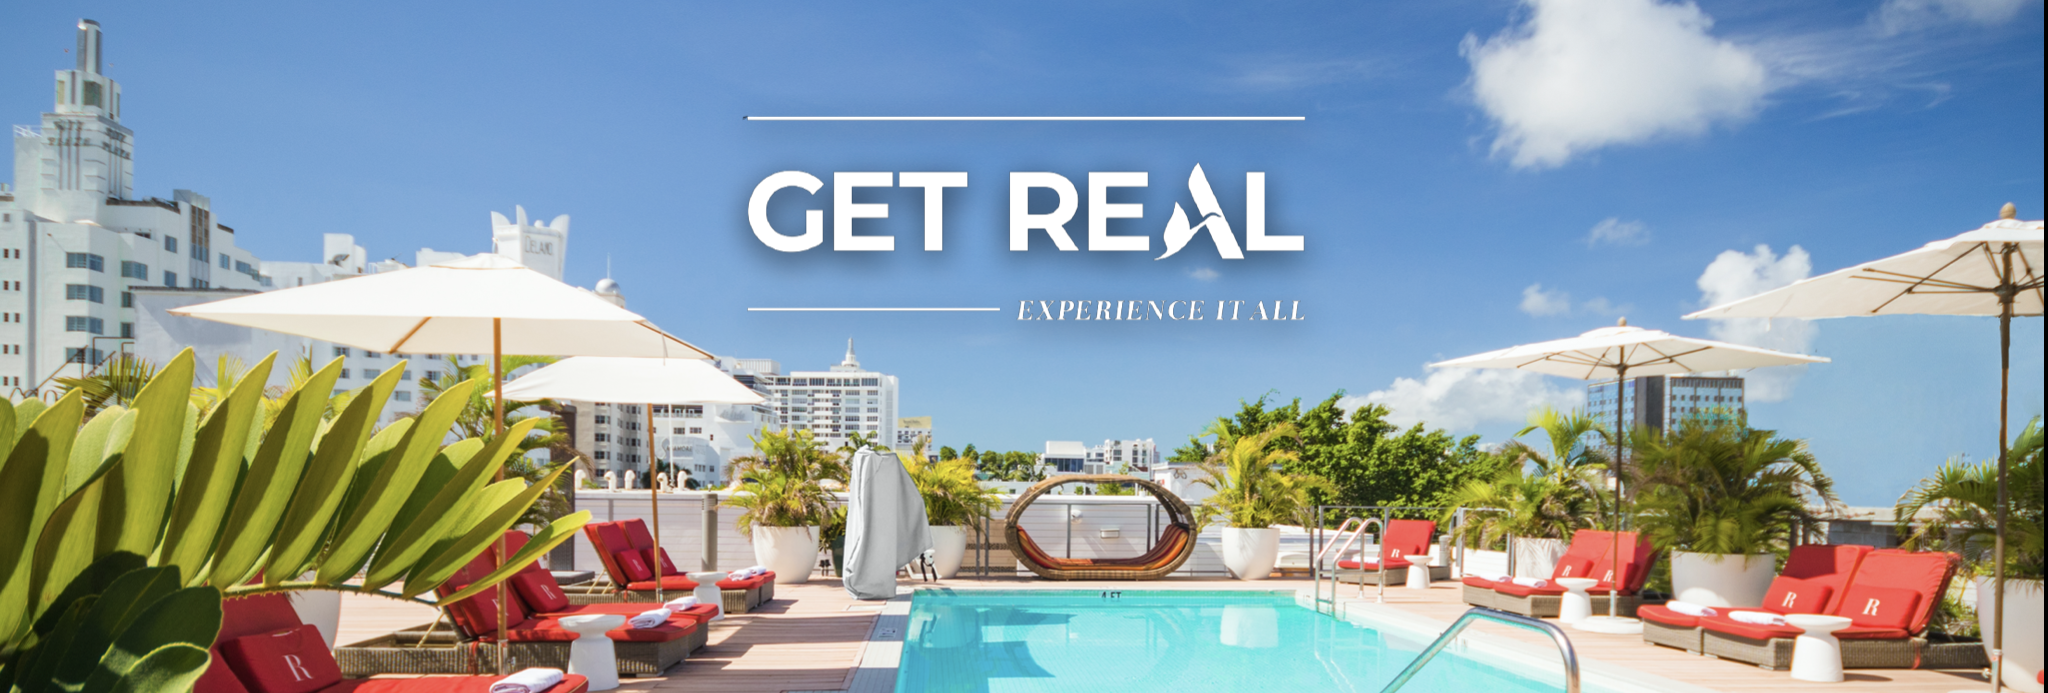 Get Real text over a rooftop pool